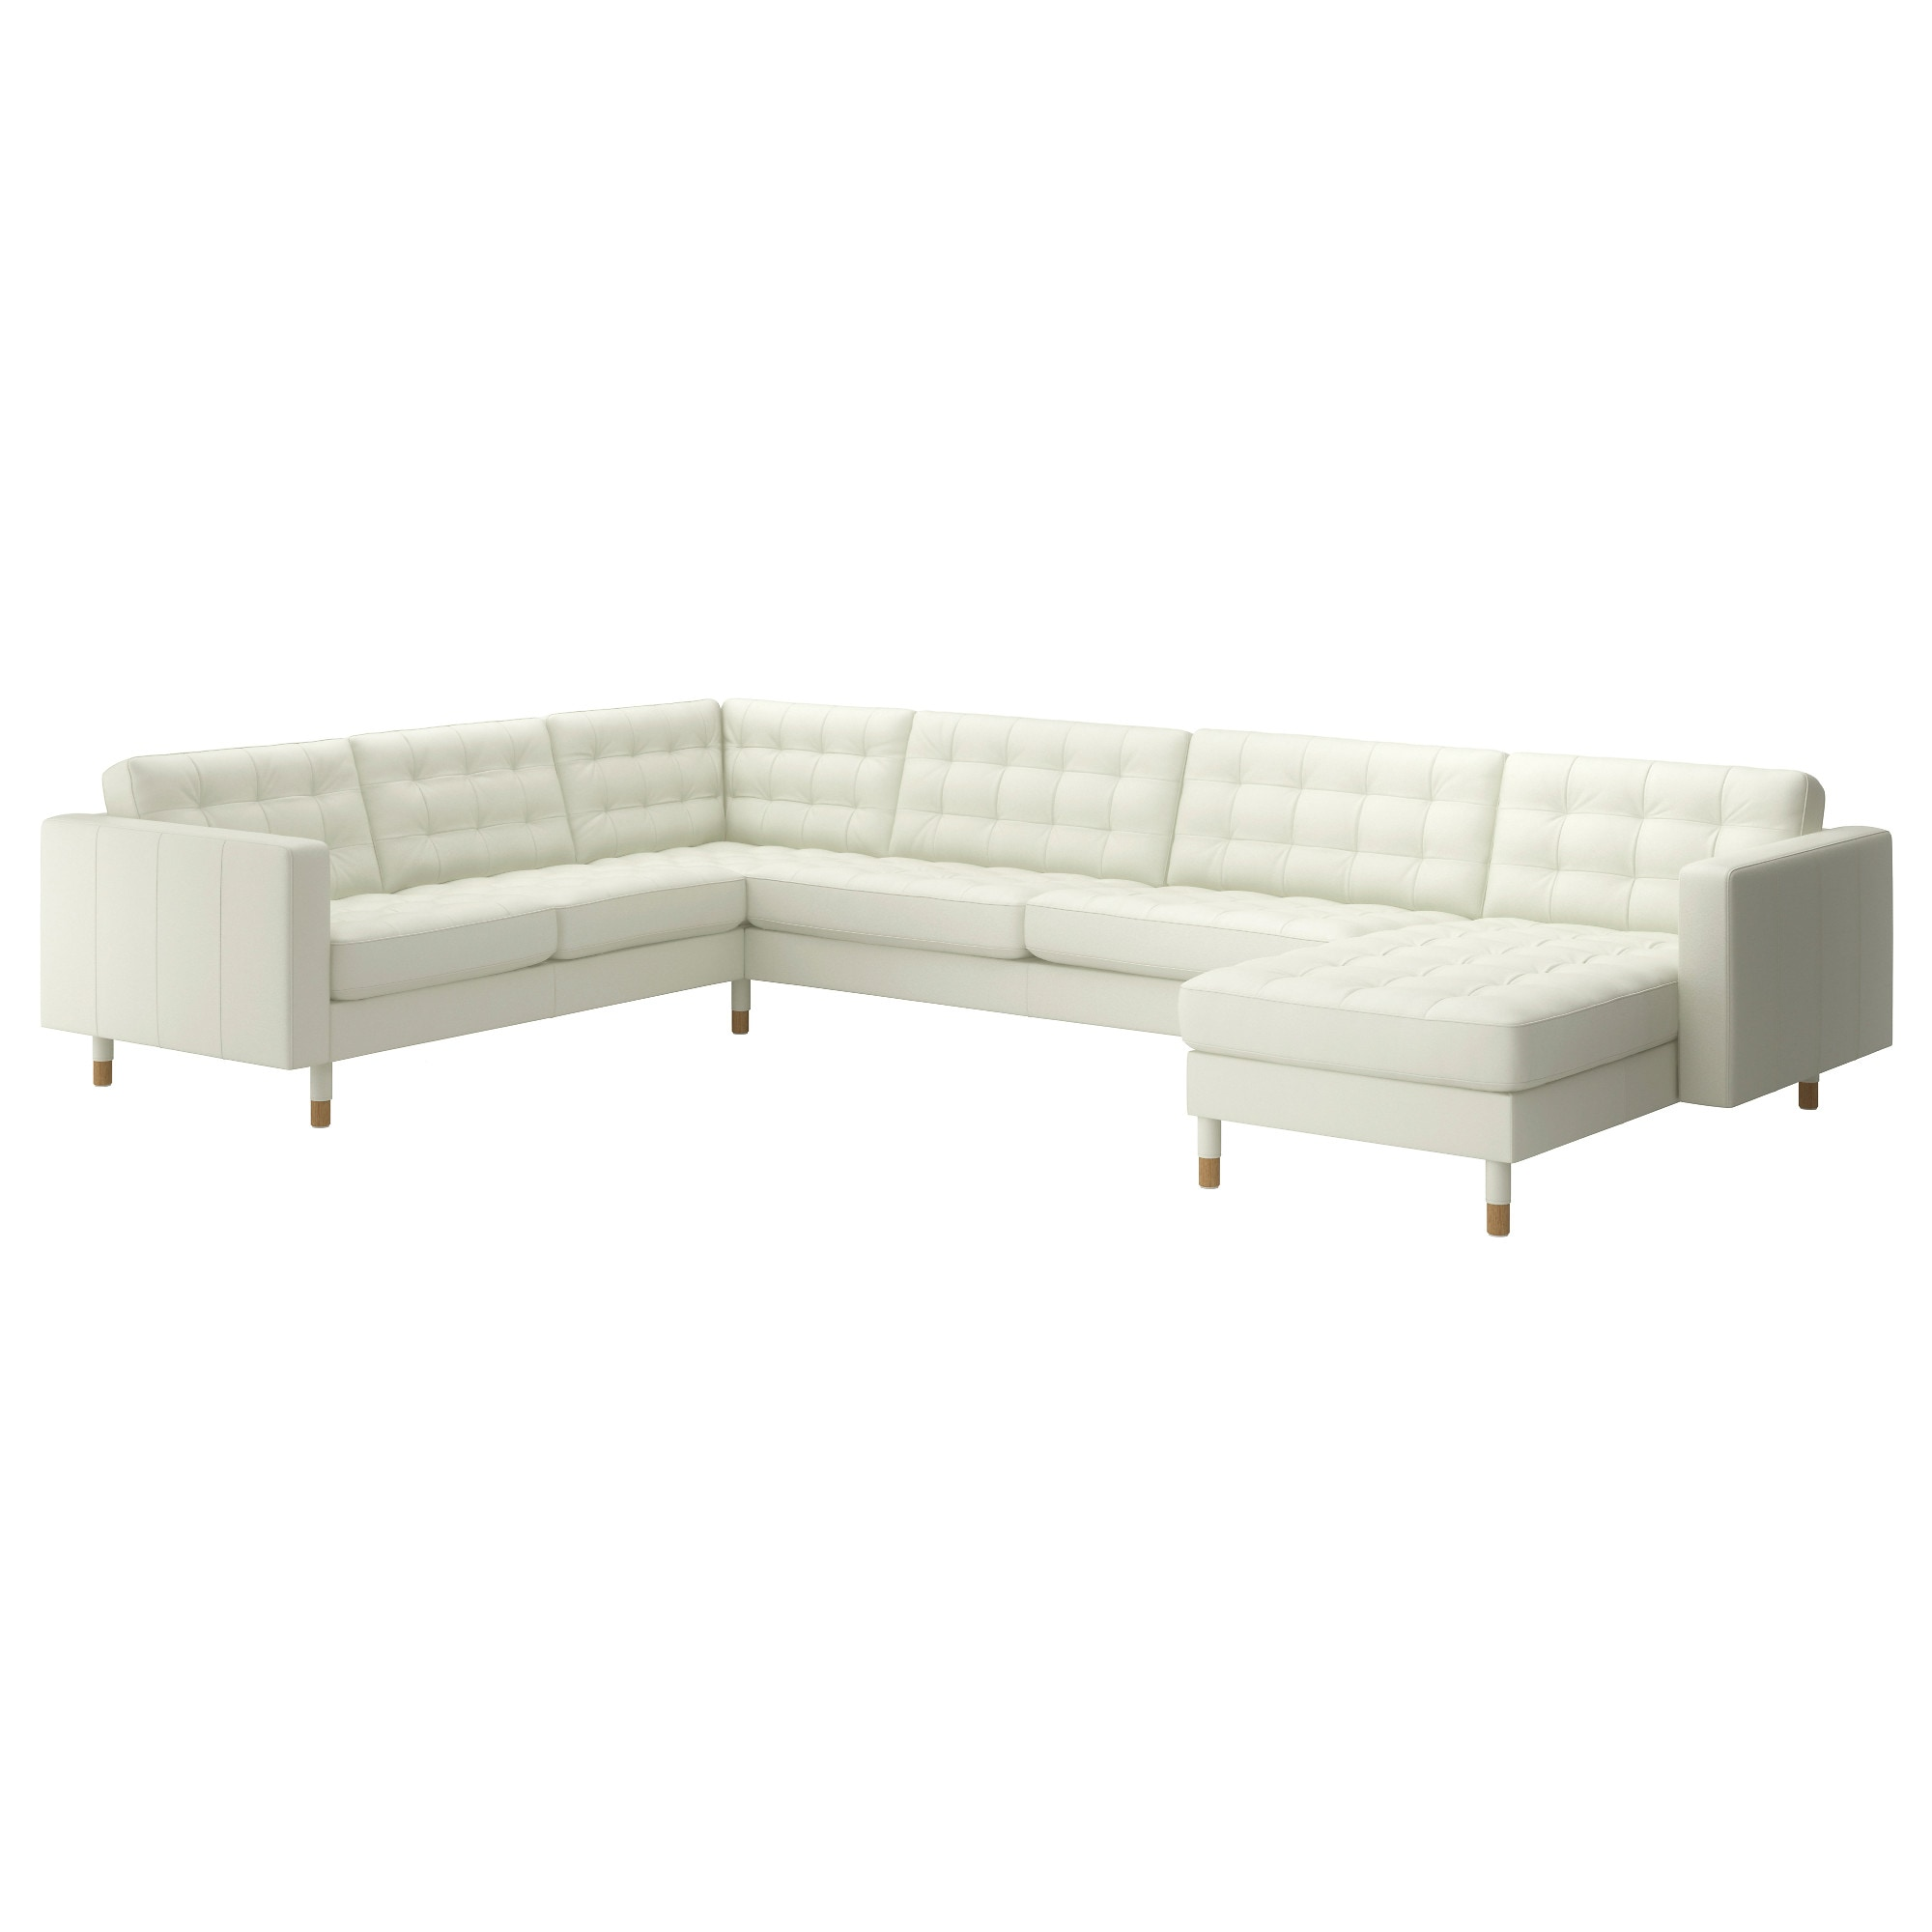 Awesome LANDSKRONA Sectional, 6 Seat Corner, Grann, Bomstad White/wood Depth: Part 16